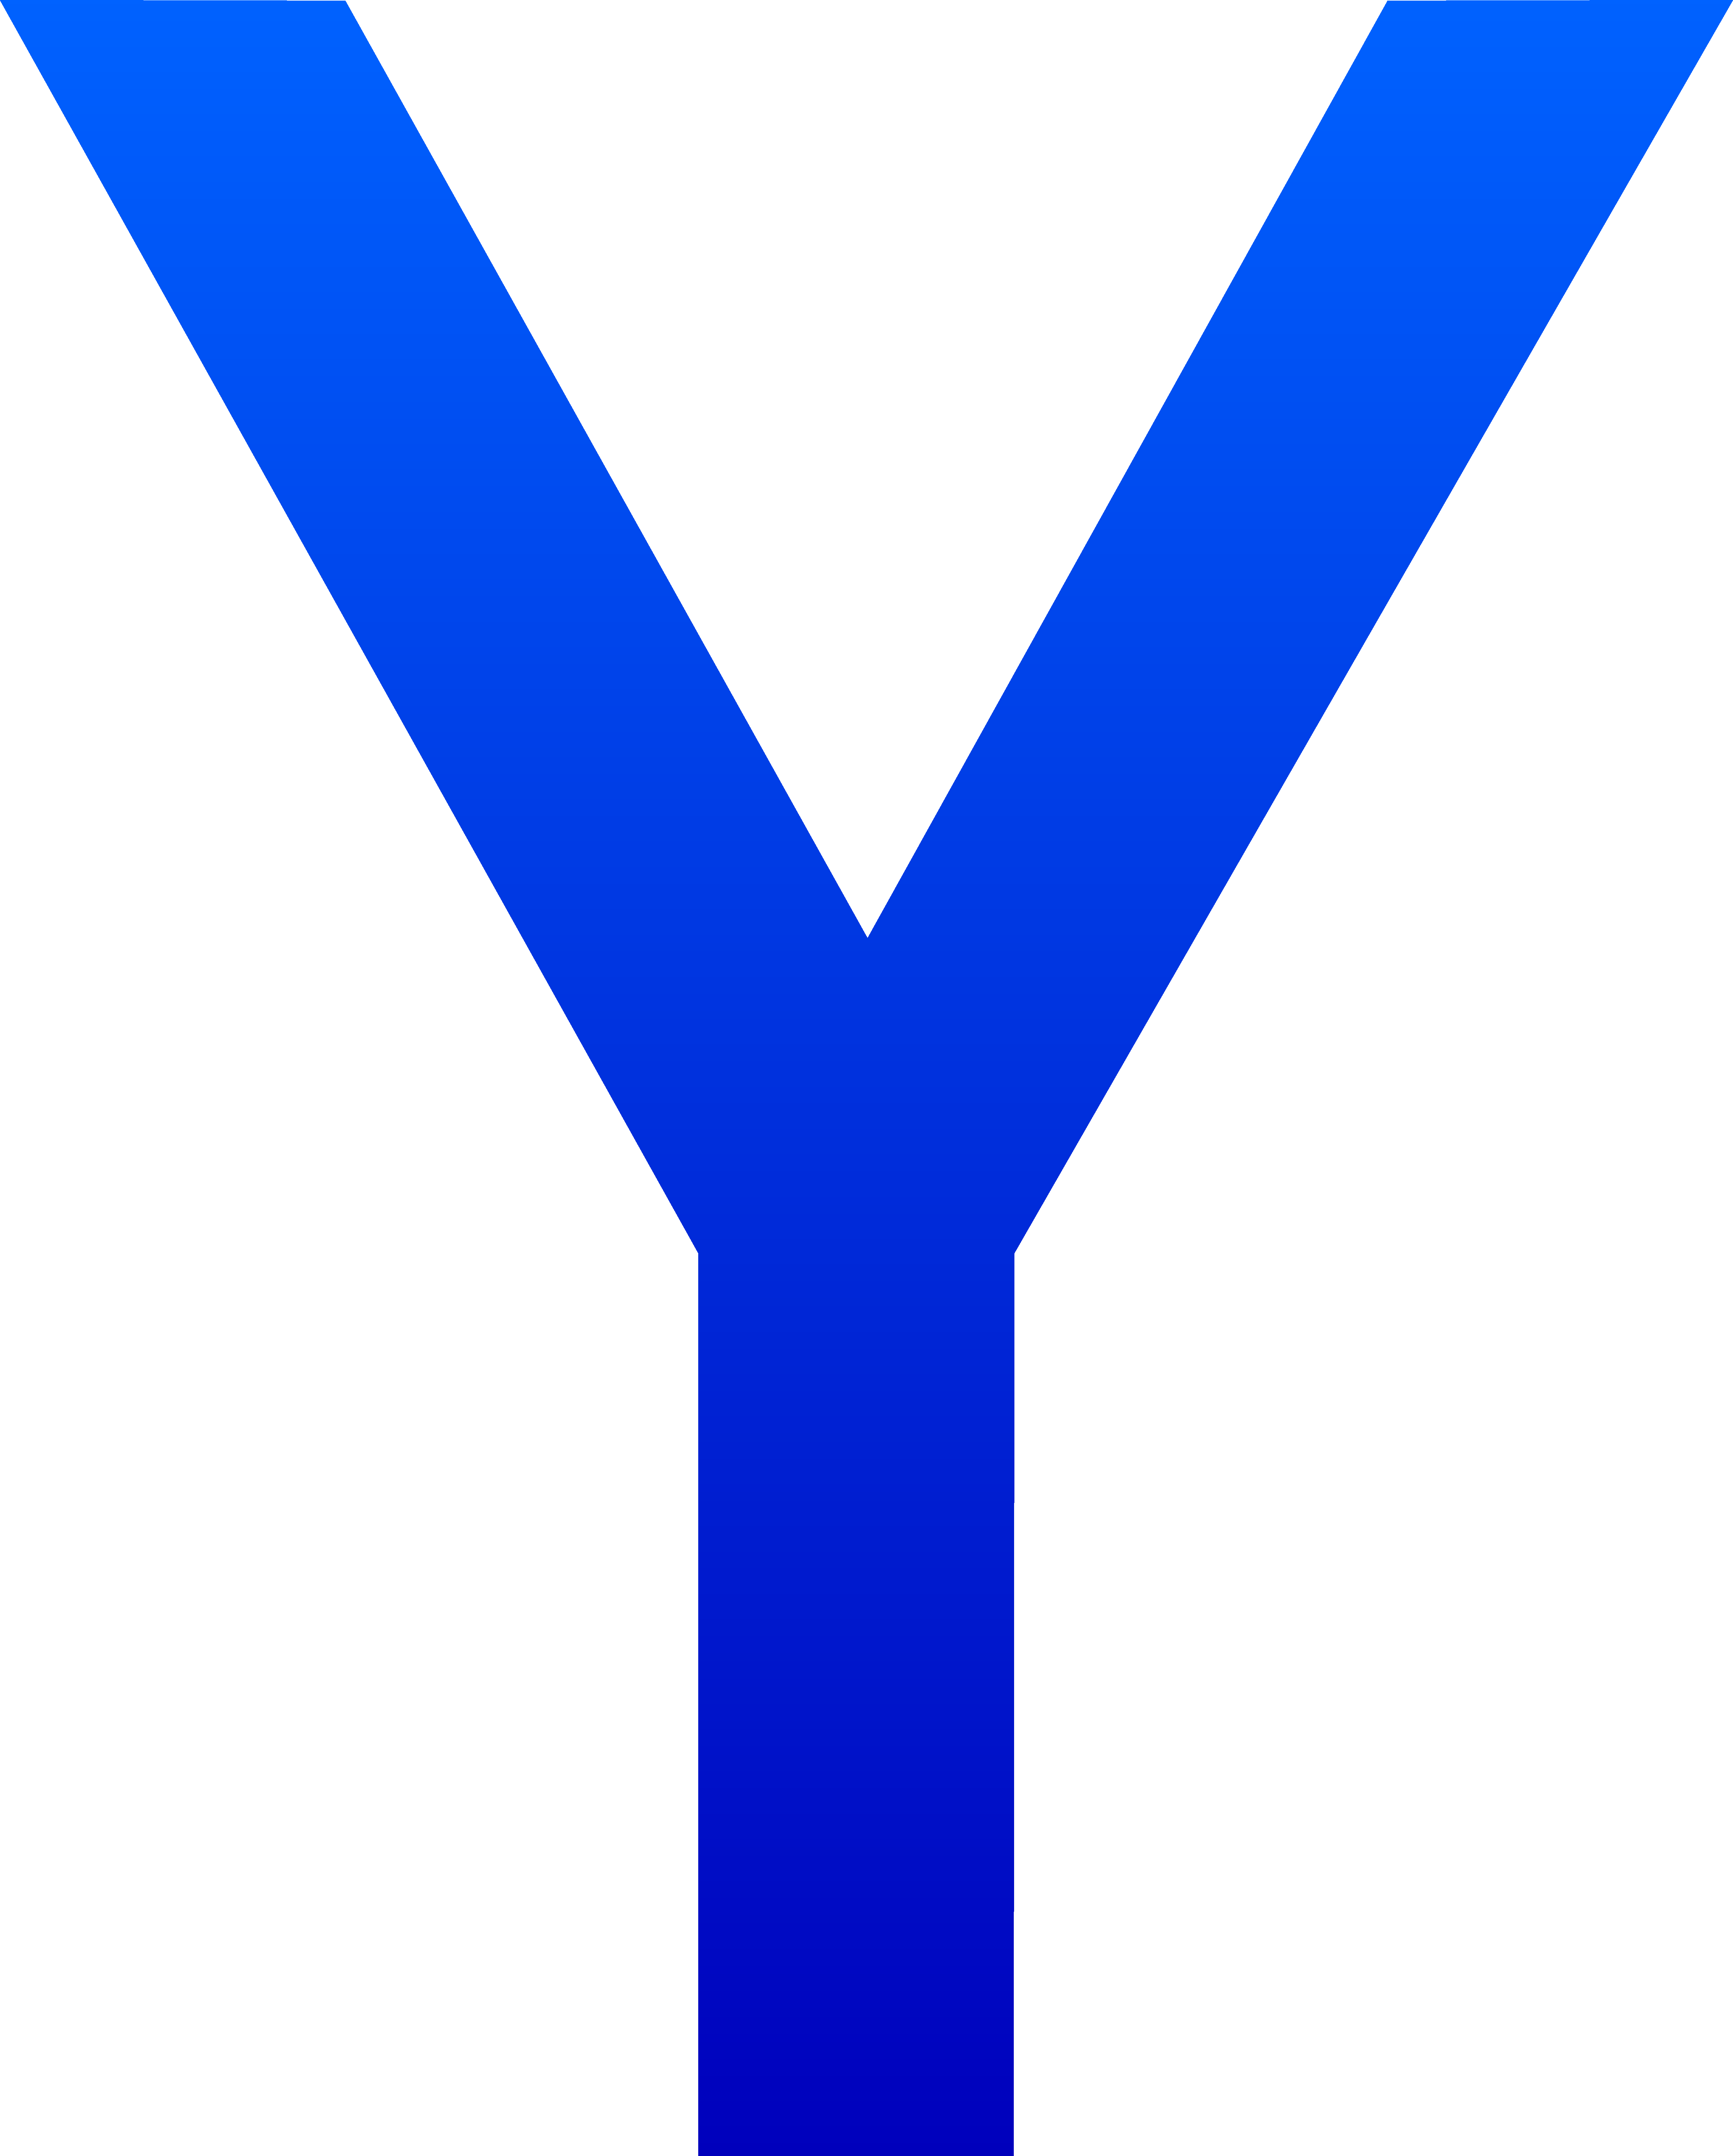 Y clipart - Clipground